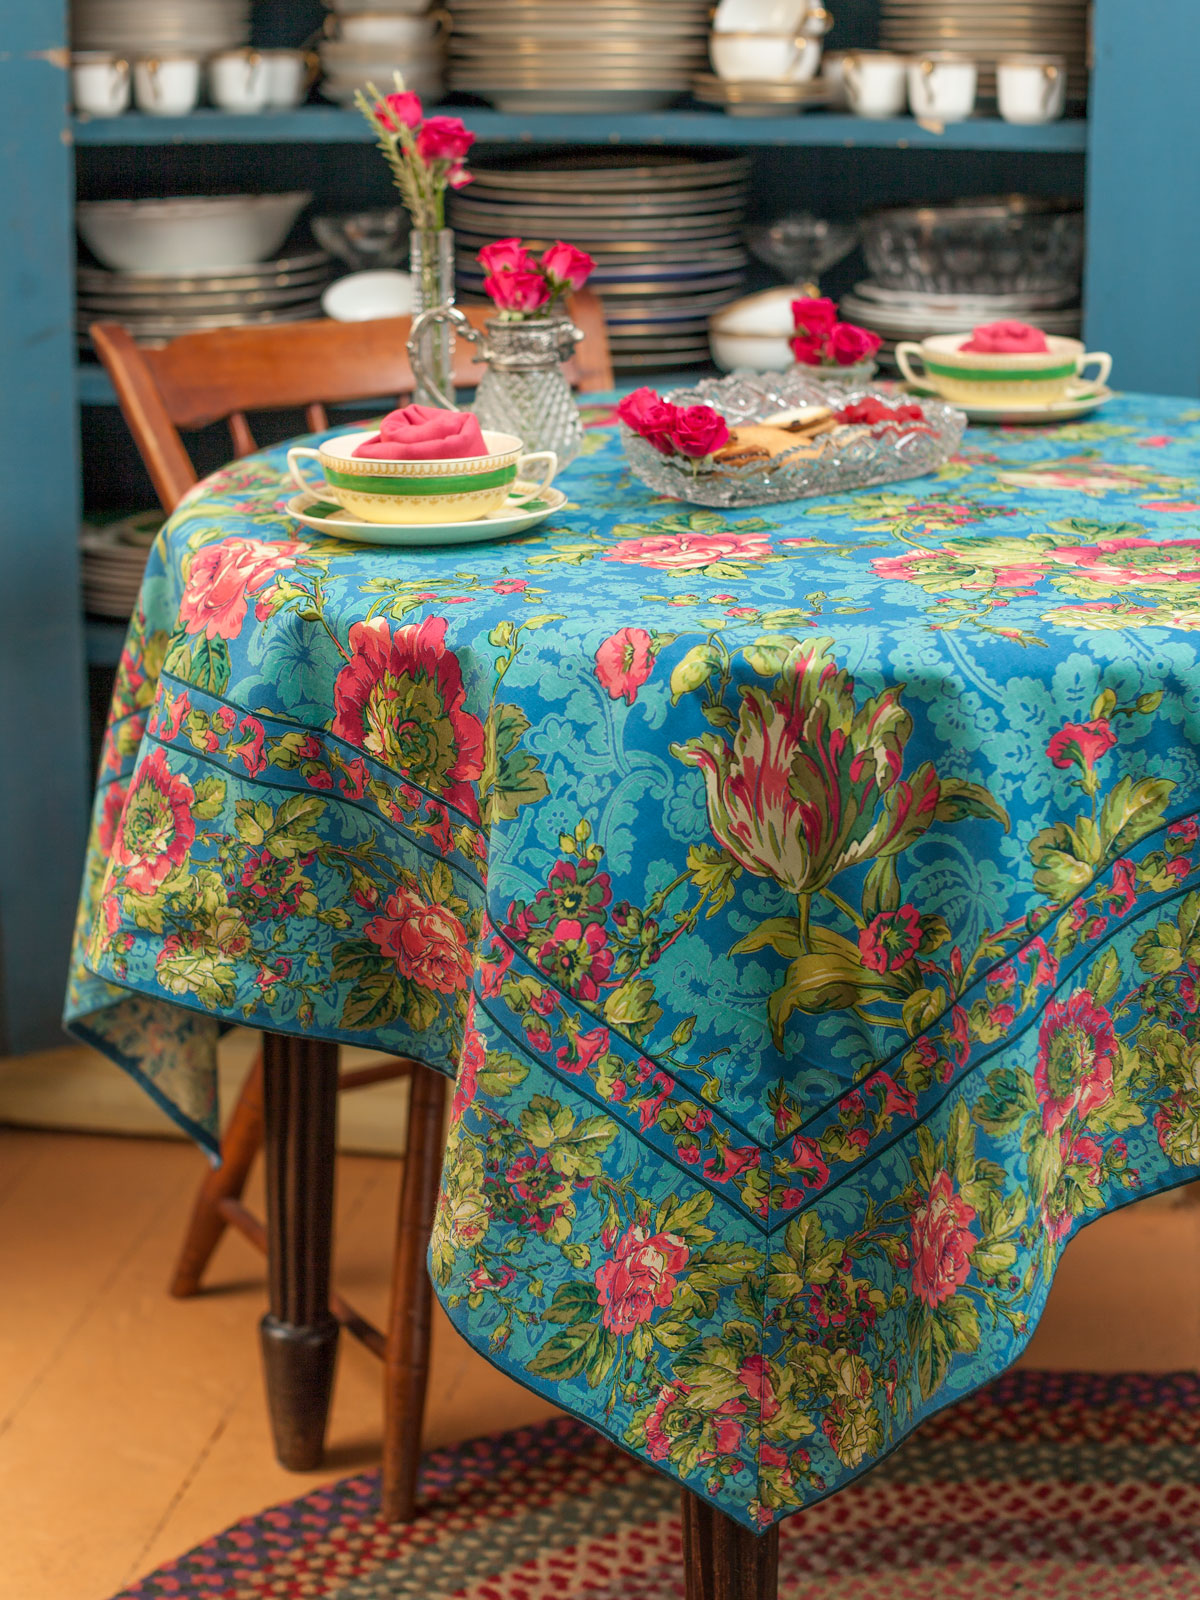 tea rose tablecloth teal attic sale linens kitchen attic beautiful designs by april cornell. Black Bedroom Furniture Sets. Home Design Ideas